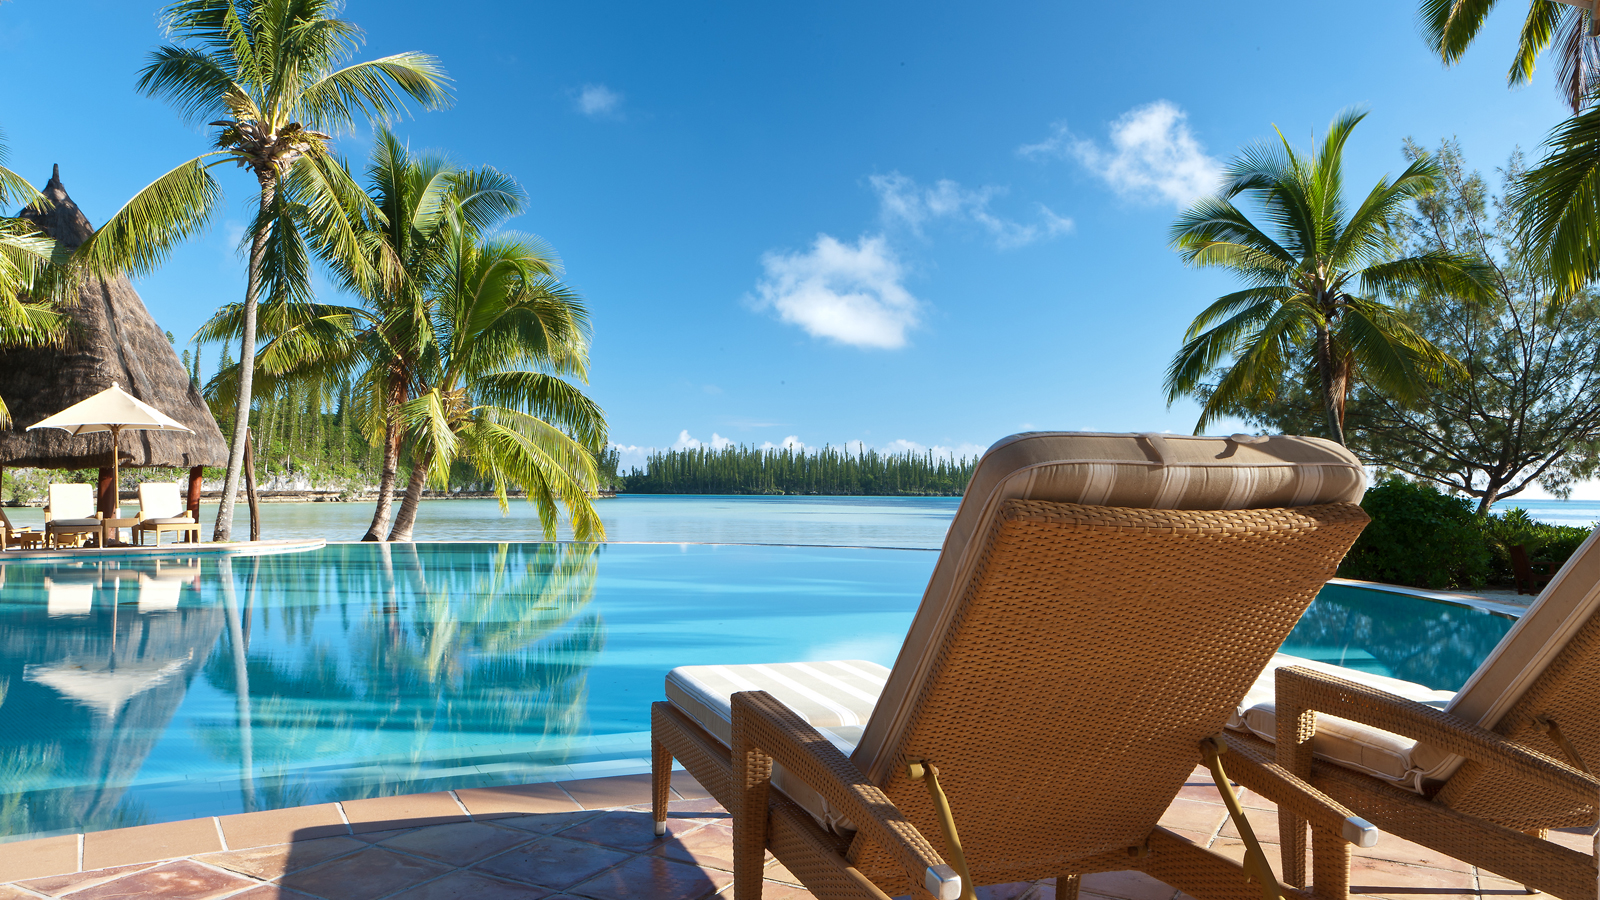 View across the infinity pool out to sea at The Méridien Hotel, New Caledonia.